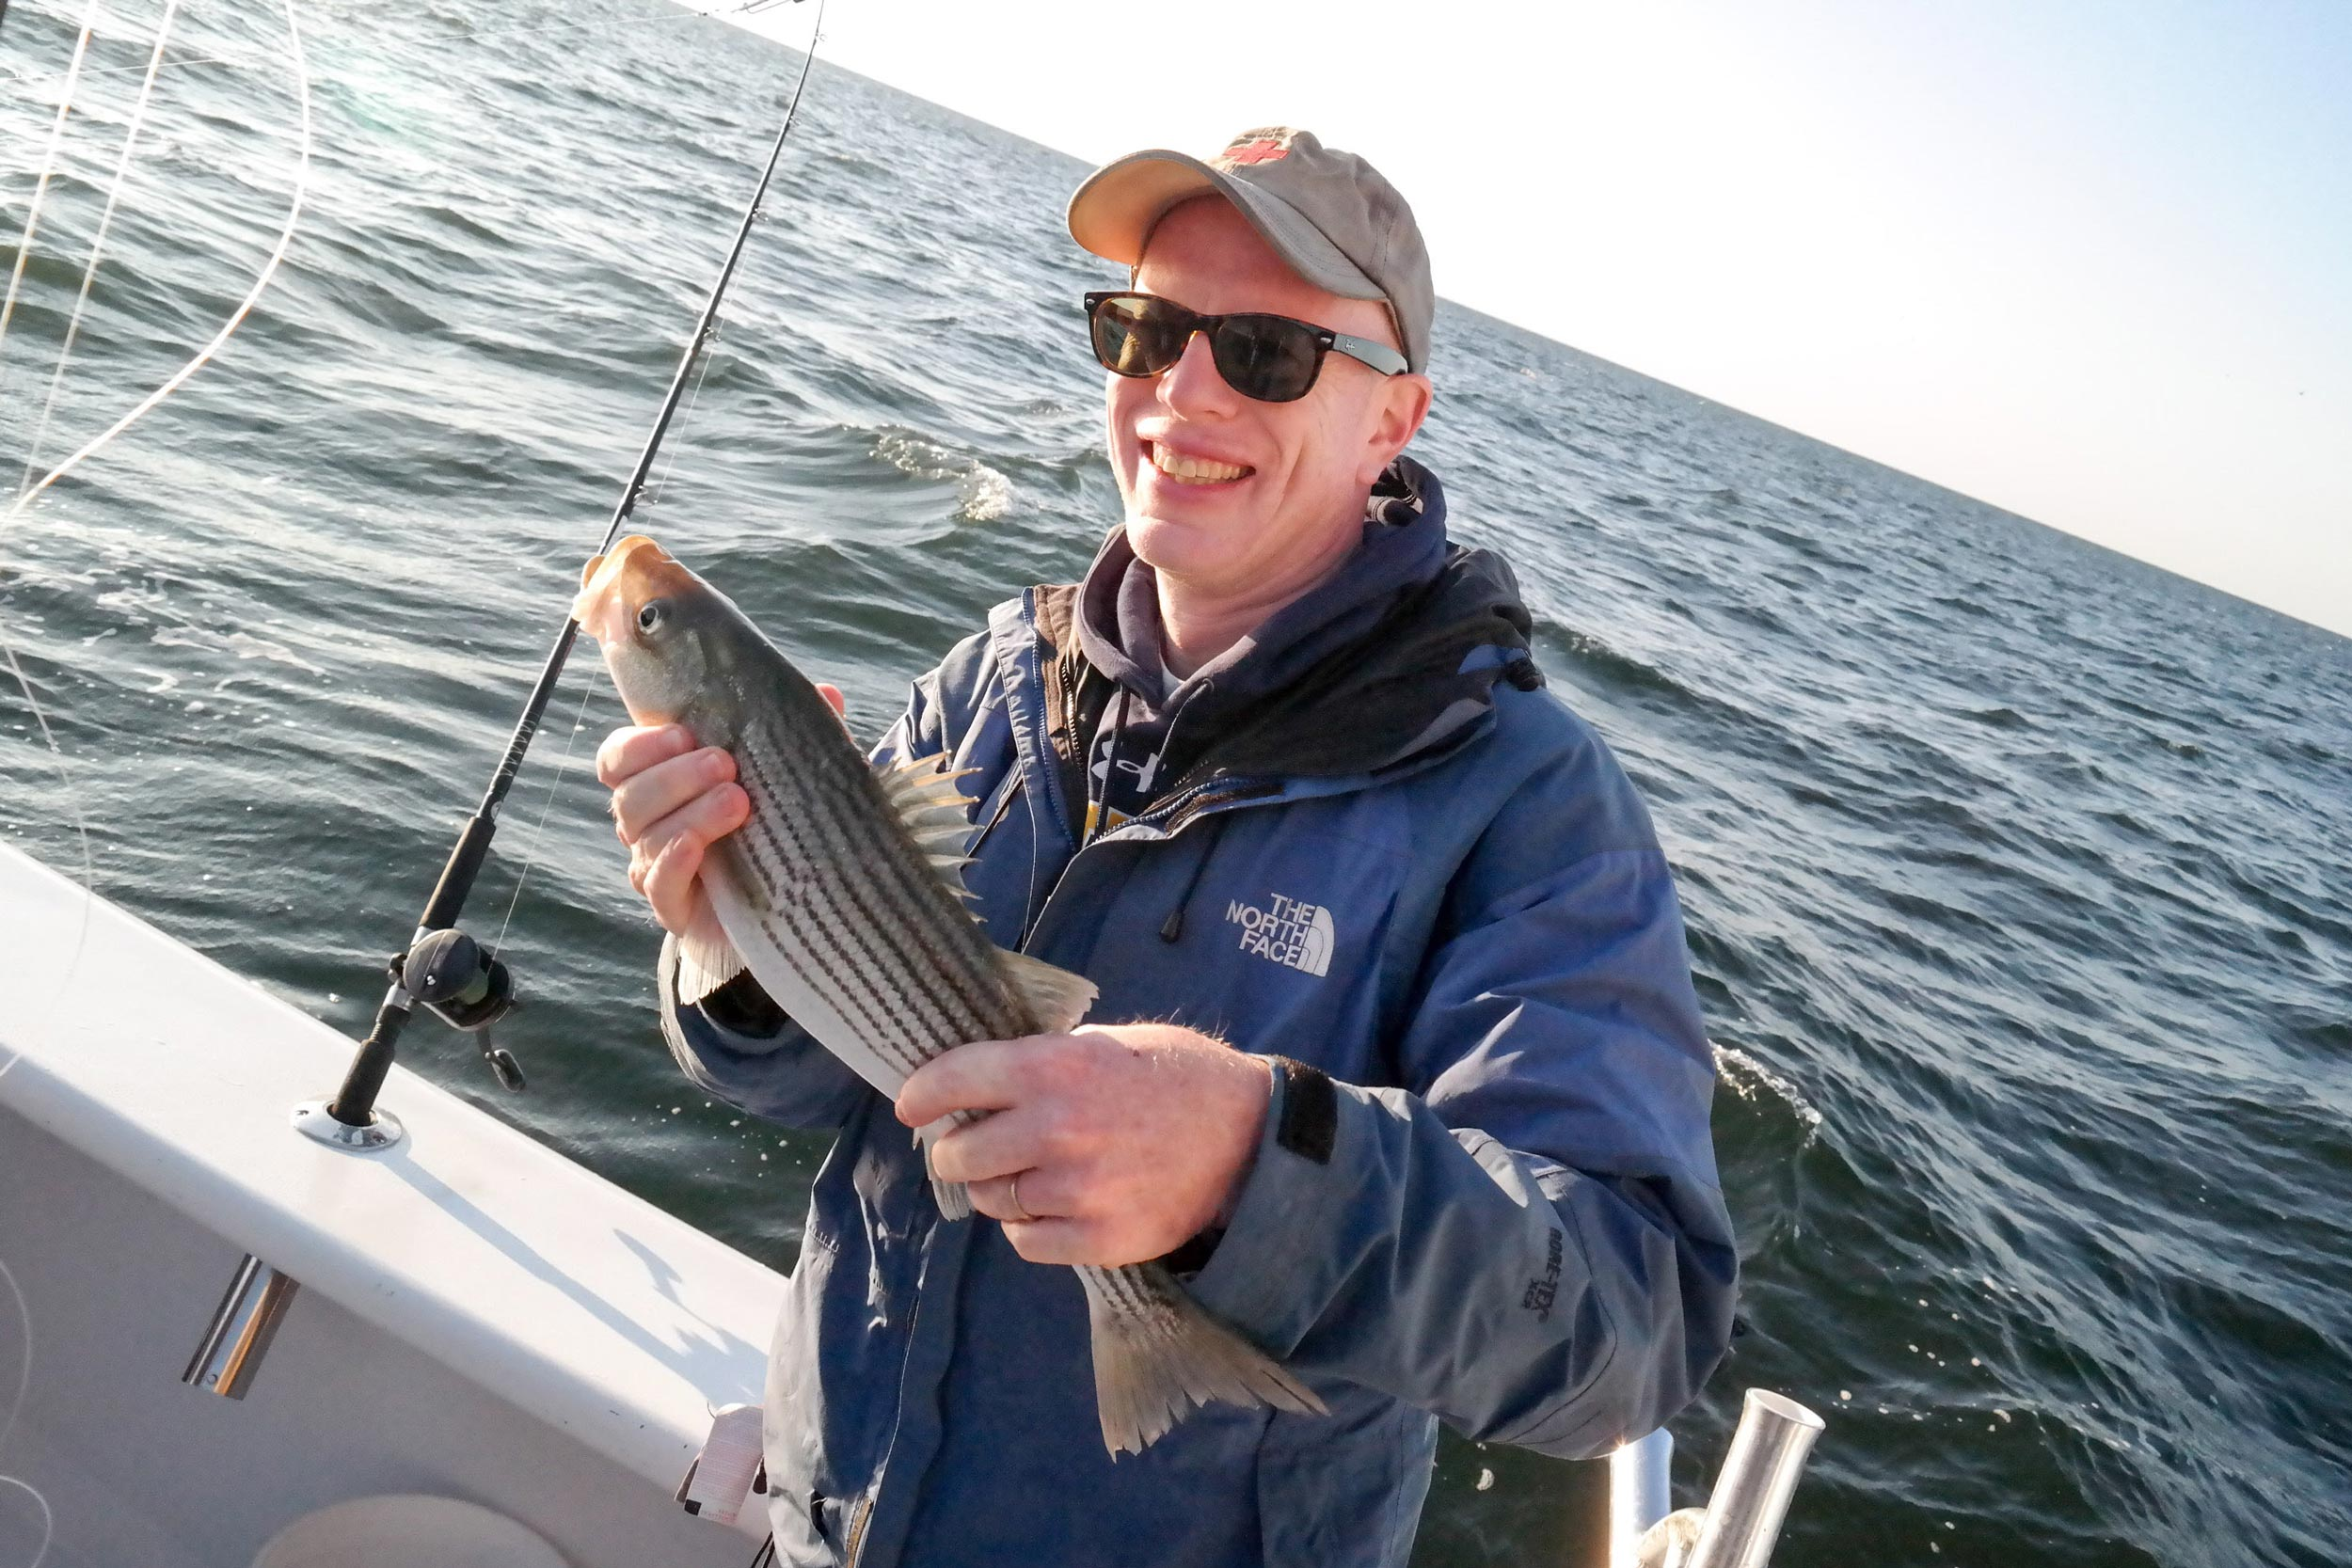 Peter Hedlund, director of Encyclopedia Virginia, took this photo of Mark Saunders in 2015 after he caught a striped bass, or rockfish, on their annual fishing trip in the Chesapeake Bay.